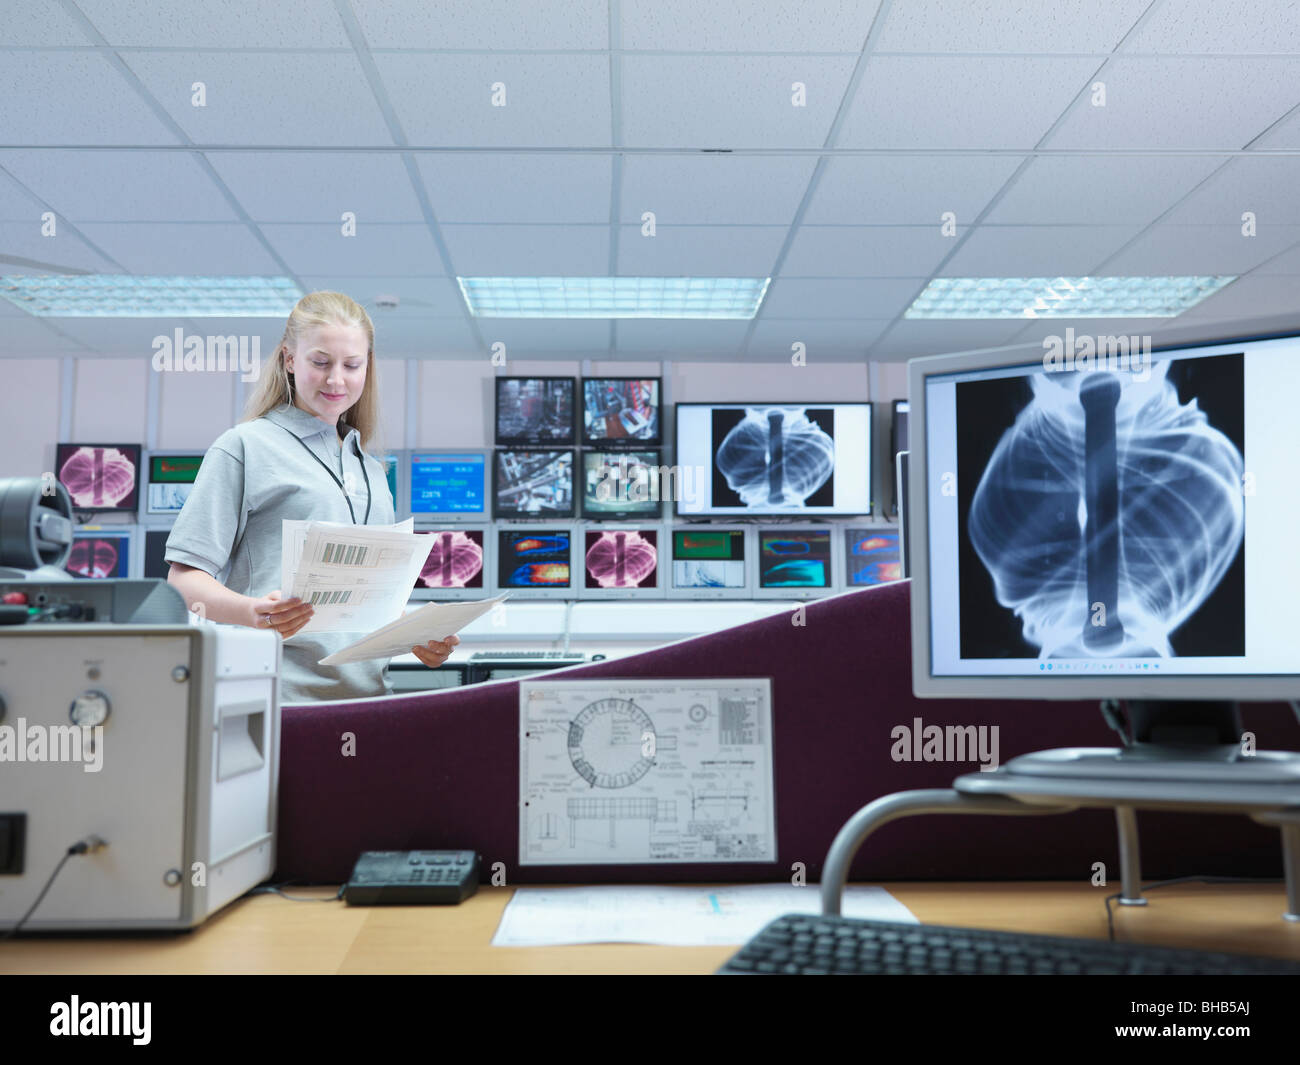 Female Fusion Scientist With Screens - Stock Image